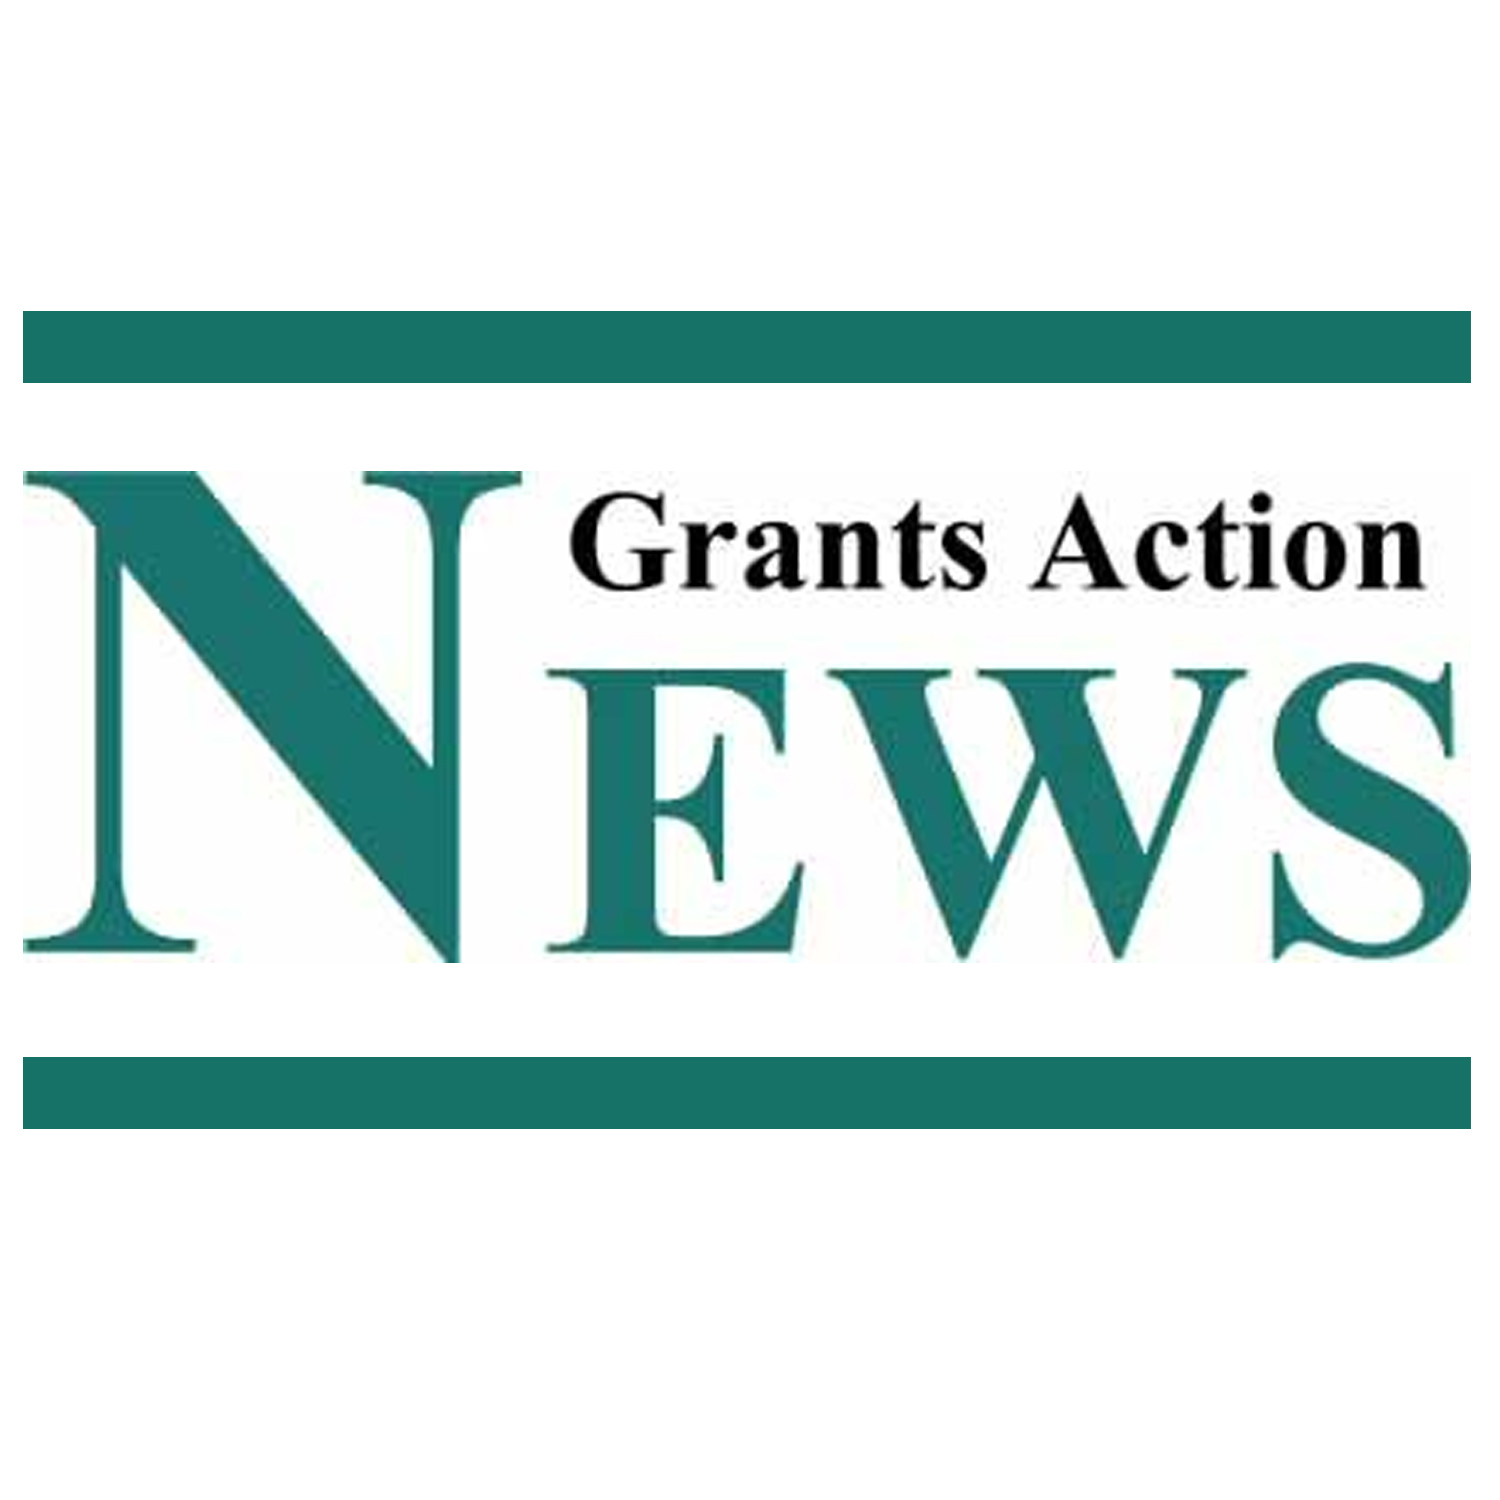 new york state grant action news backup generators